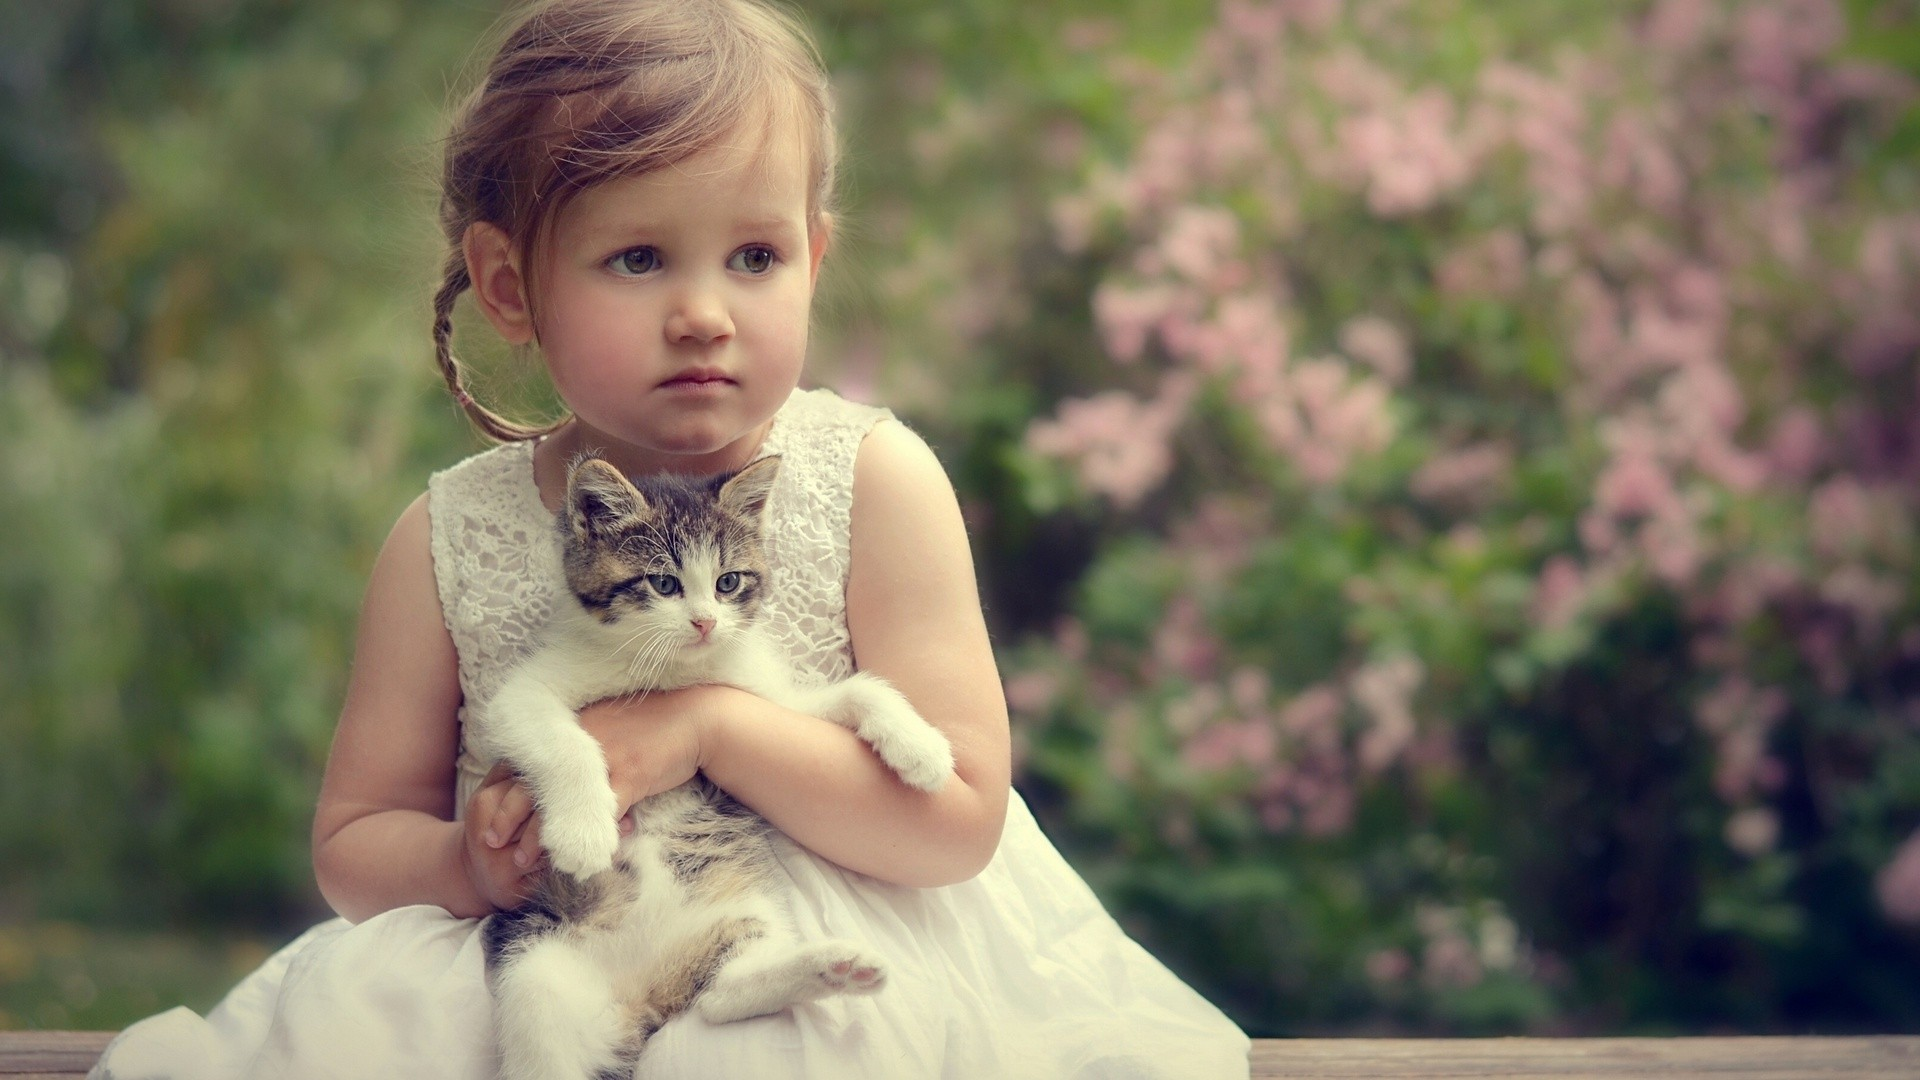 Animals Hd Wallpapers 2015 Funny Kissing Hugging Baby: Sweet-doll-girl-with-cati-free-hd-wallpaer